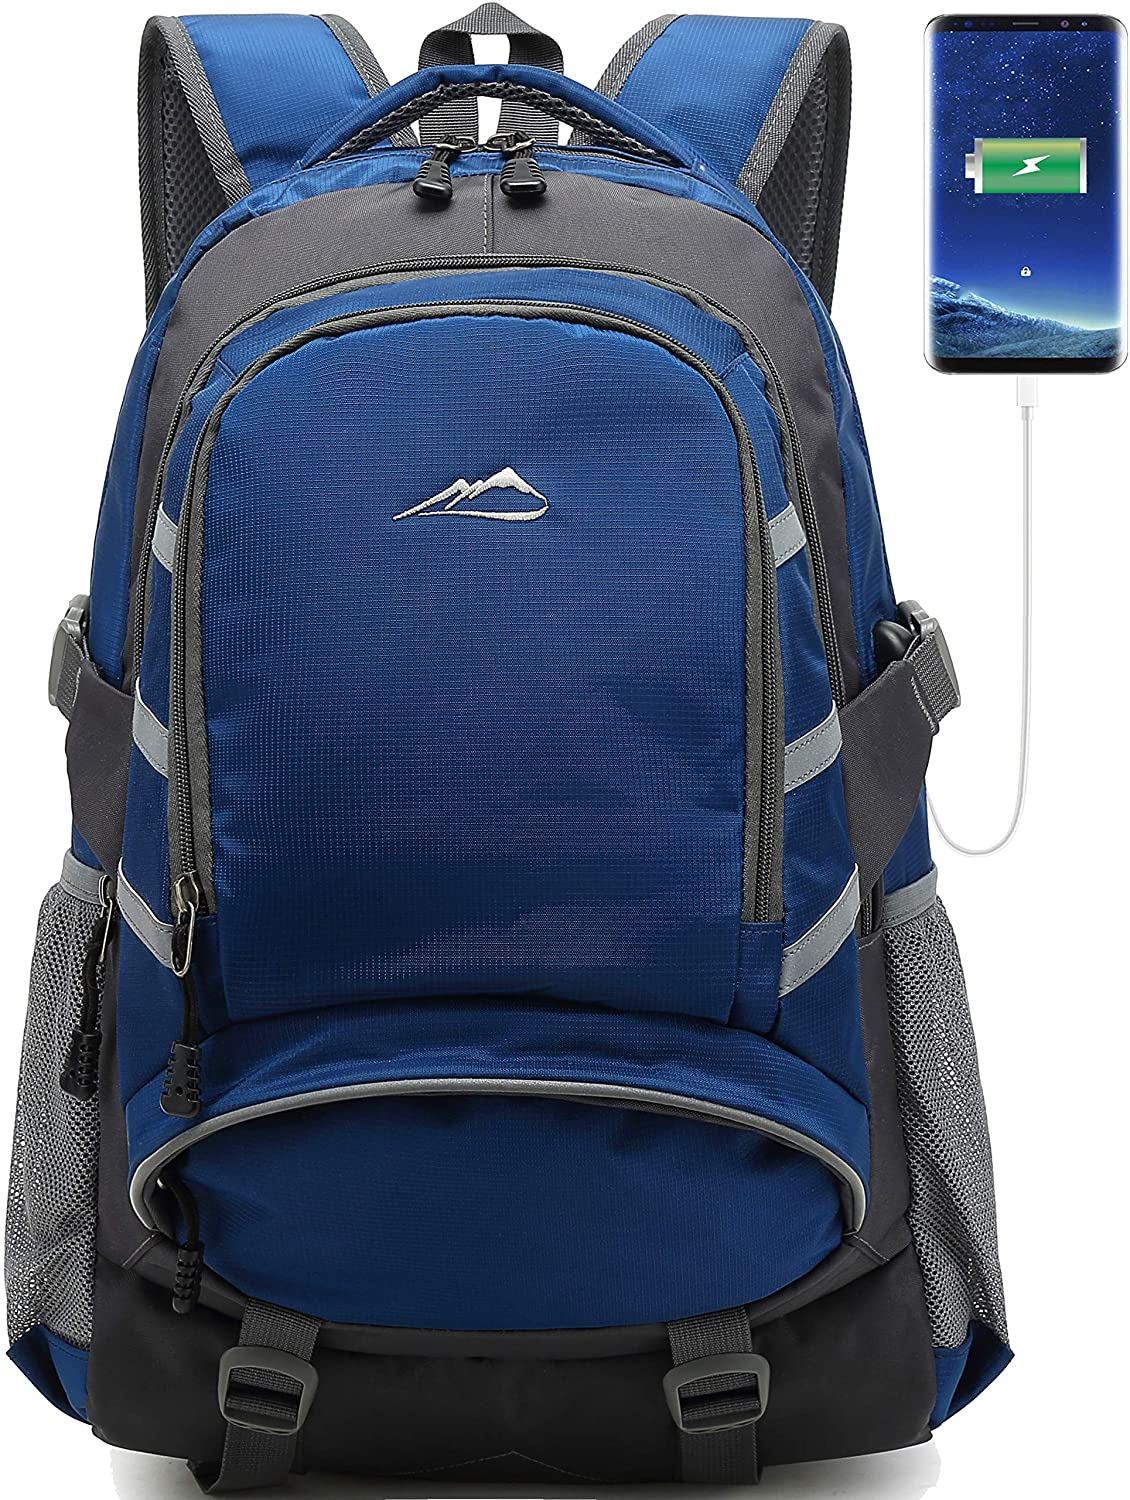 School Backpack with USB Charging Port Travel College Student Business Bookbag